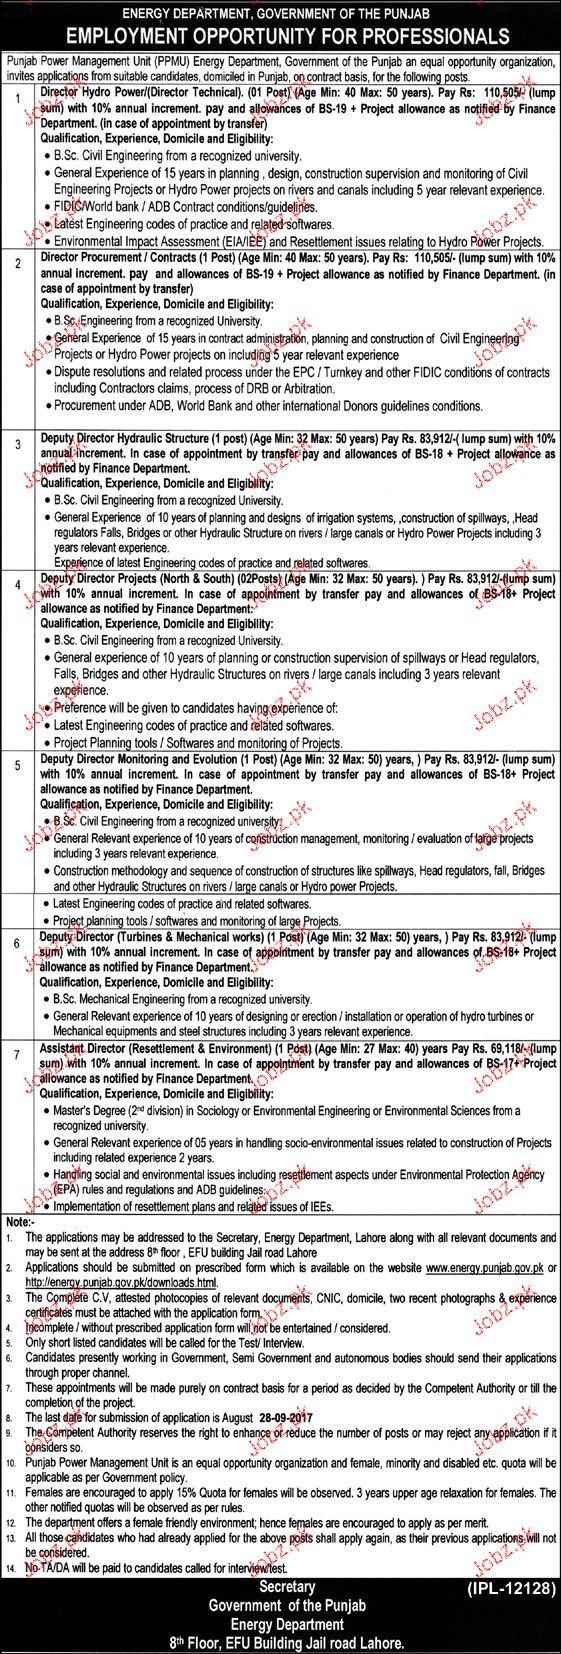 Energy Department Government of Punjab Jobs